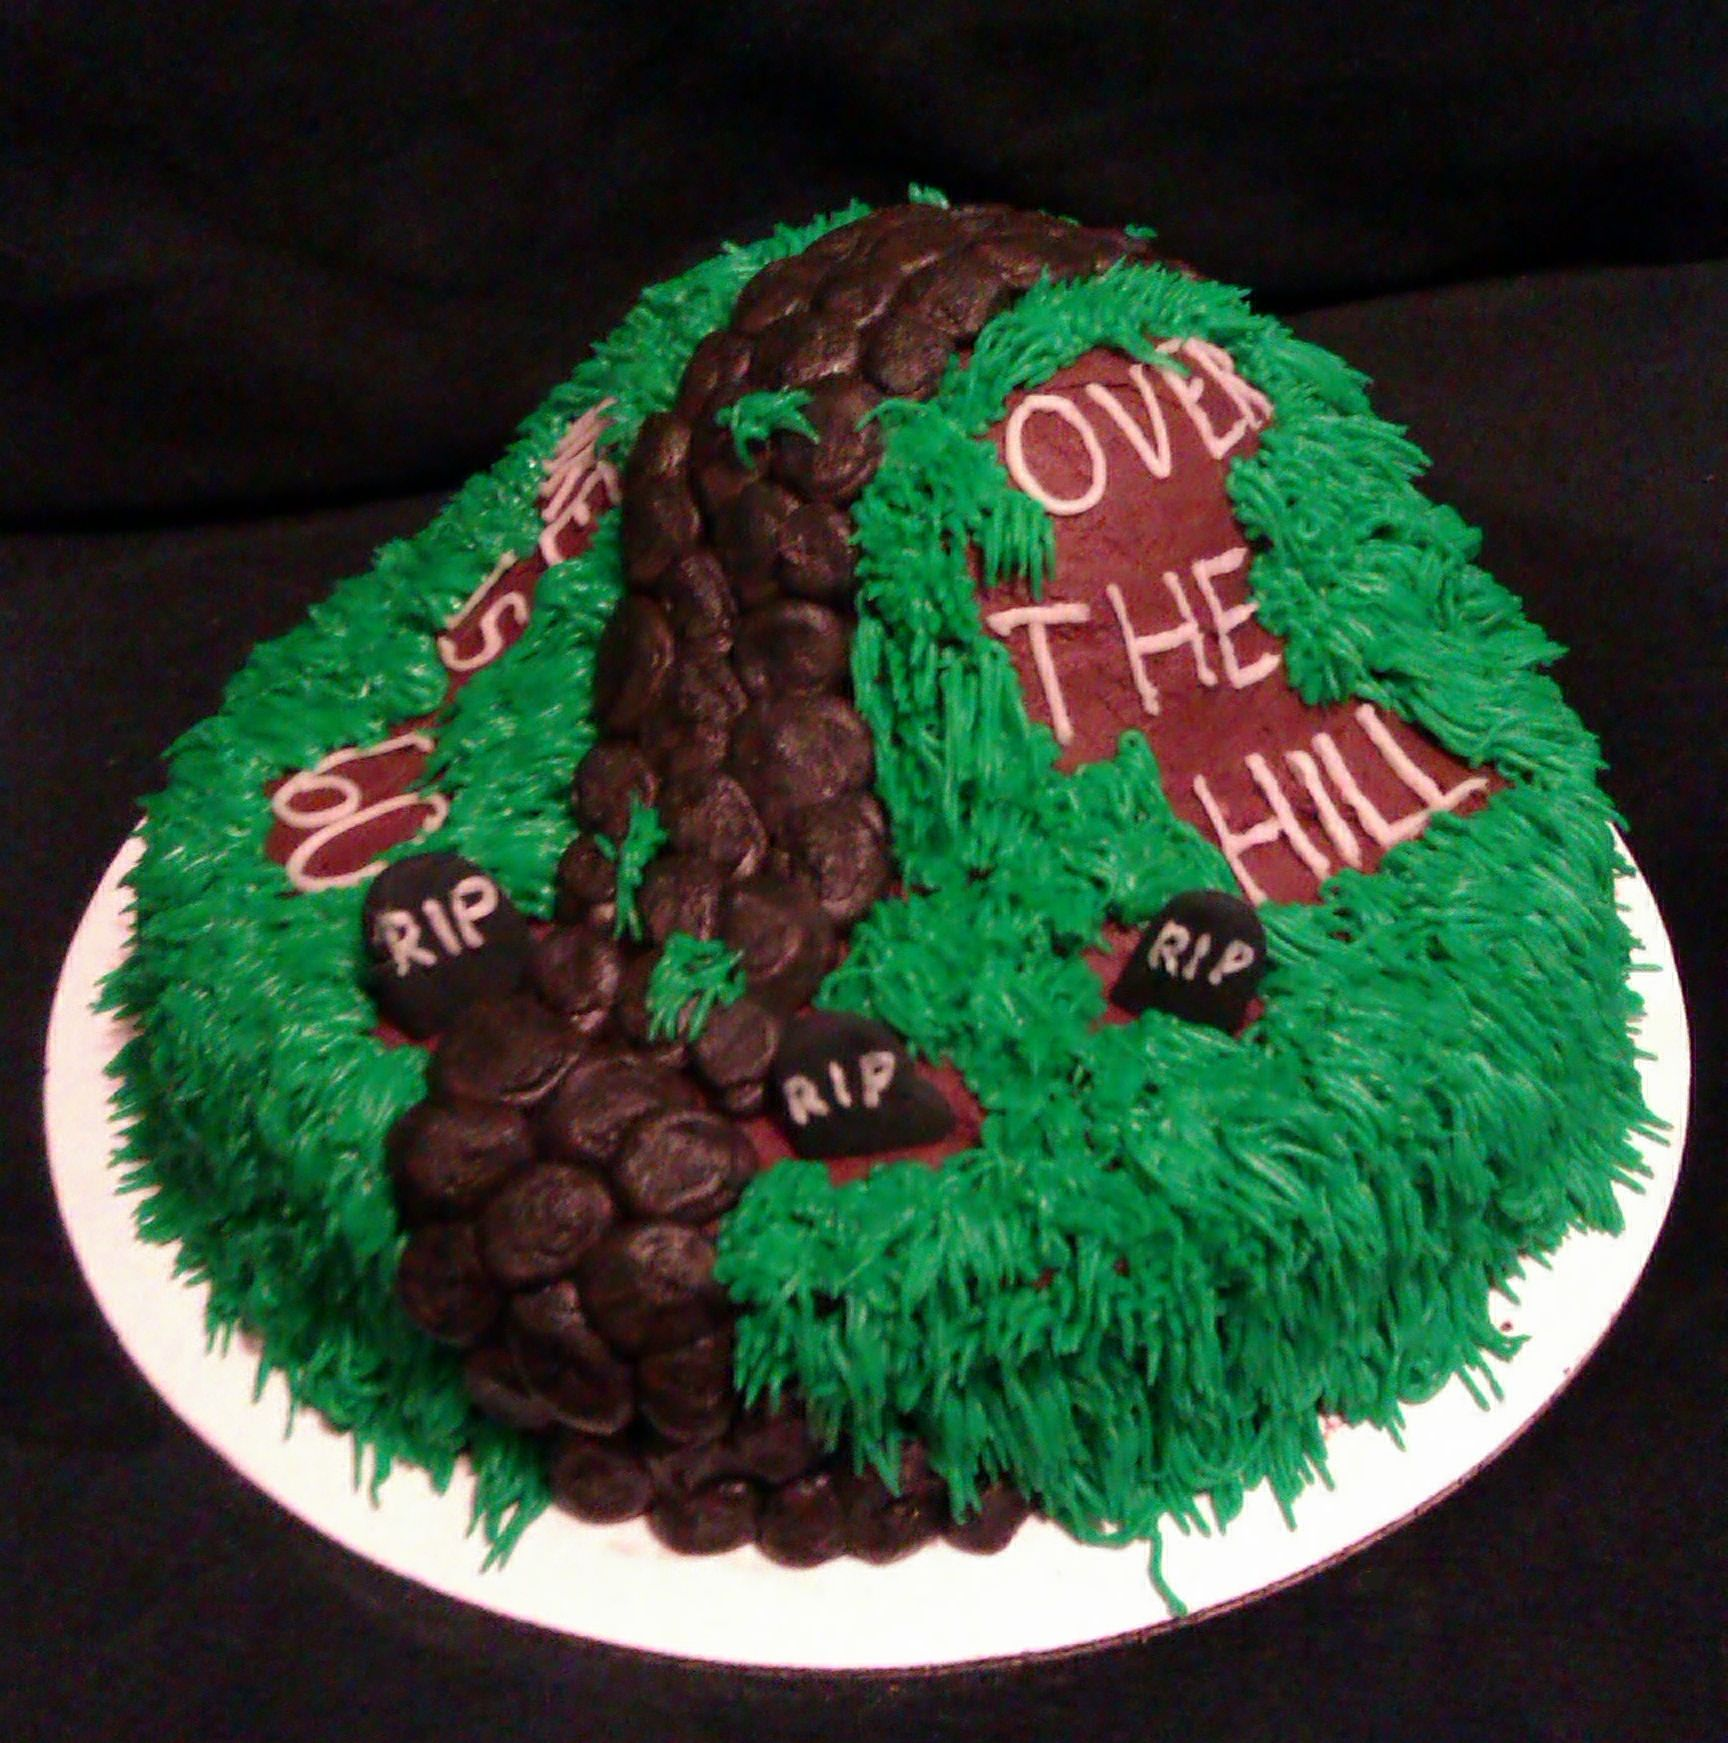 Astounding Over The Hill Cake Ideas For Men Pin Over The Hill 50Th Birthday Personalised Birthday Cards Vishlily Jamesorg